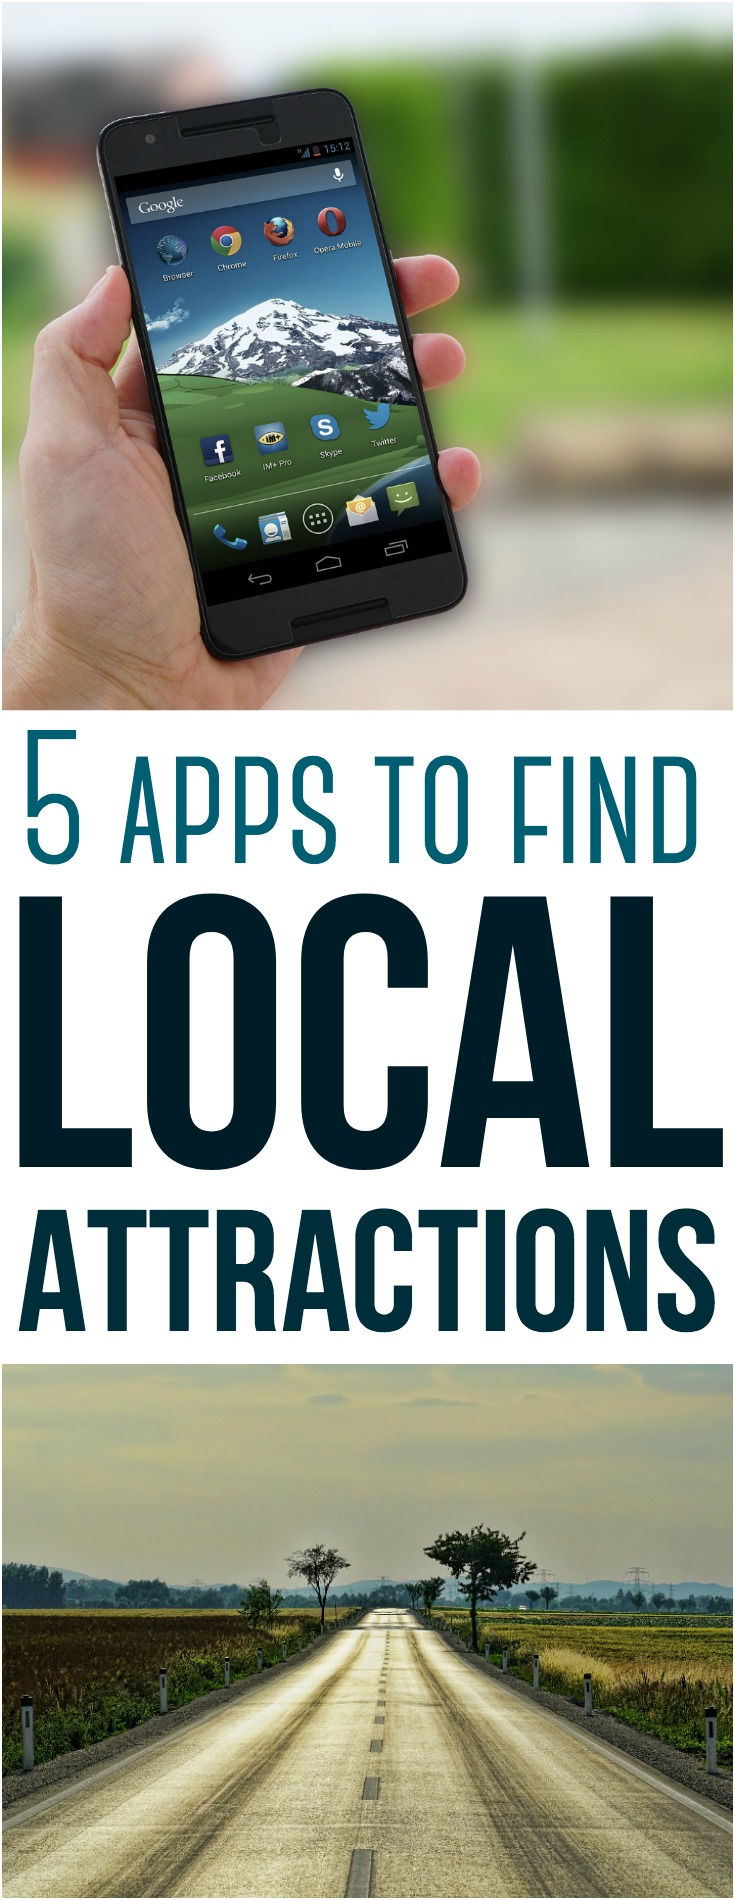 There are lots of cool traveling apps you can use to find awesome spots. Here are 5 apps to help you find local attractions!